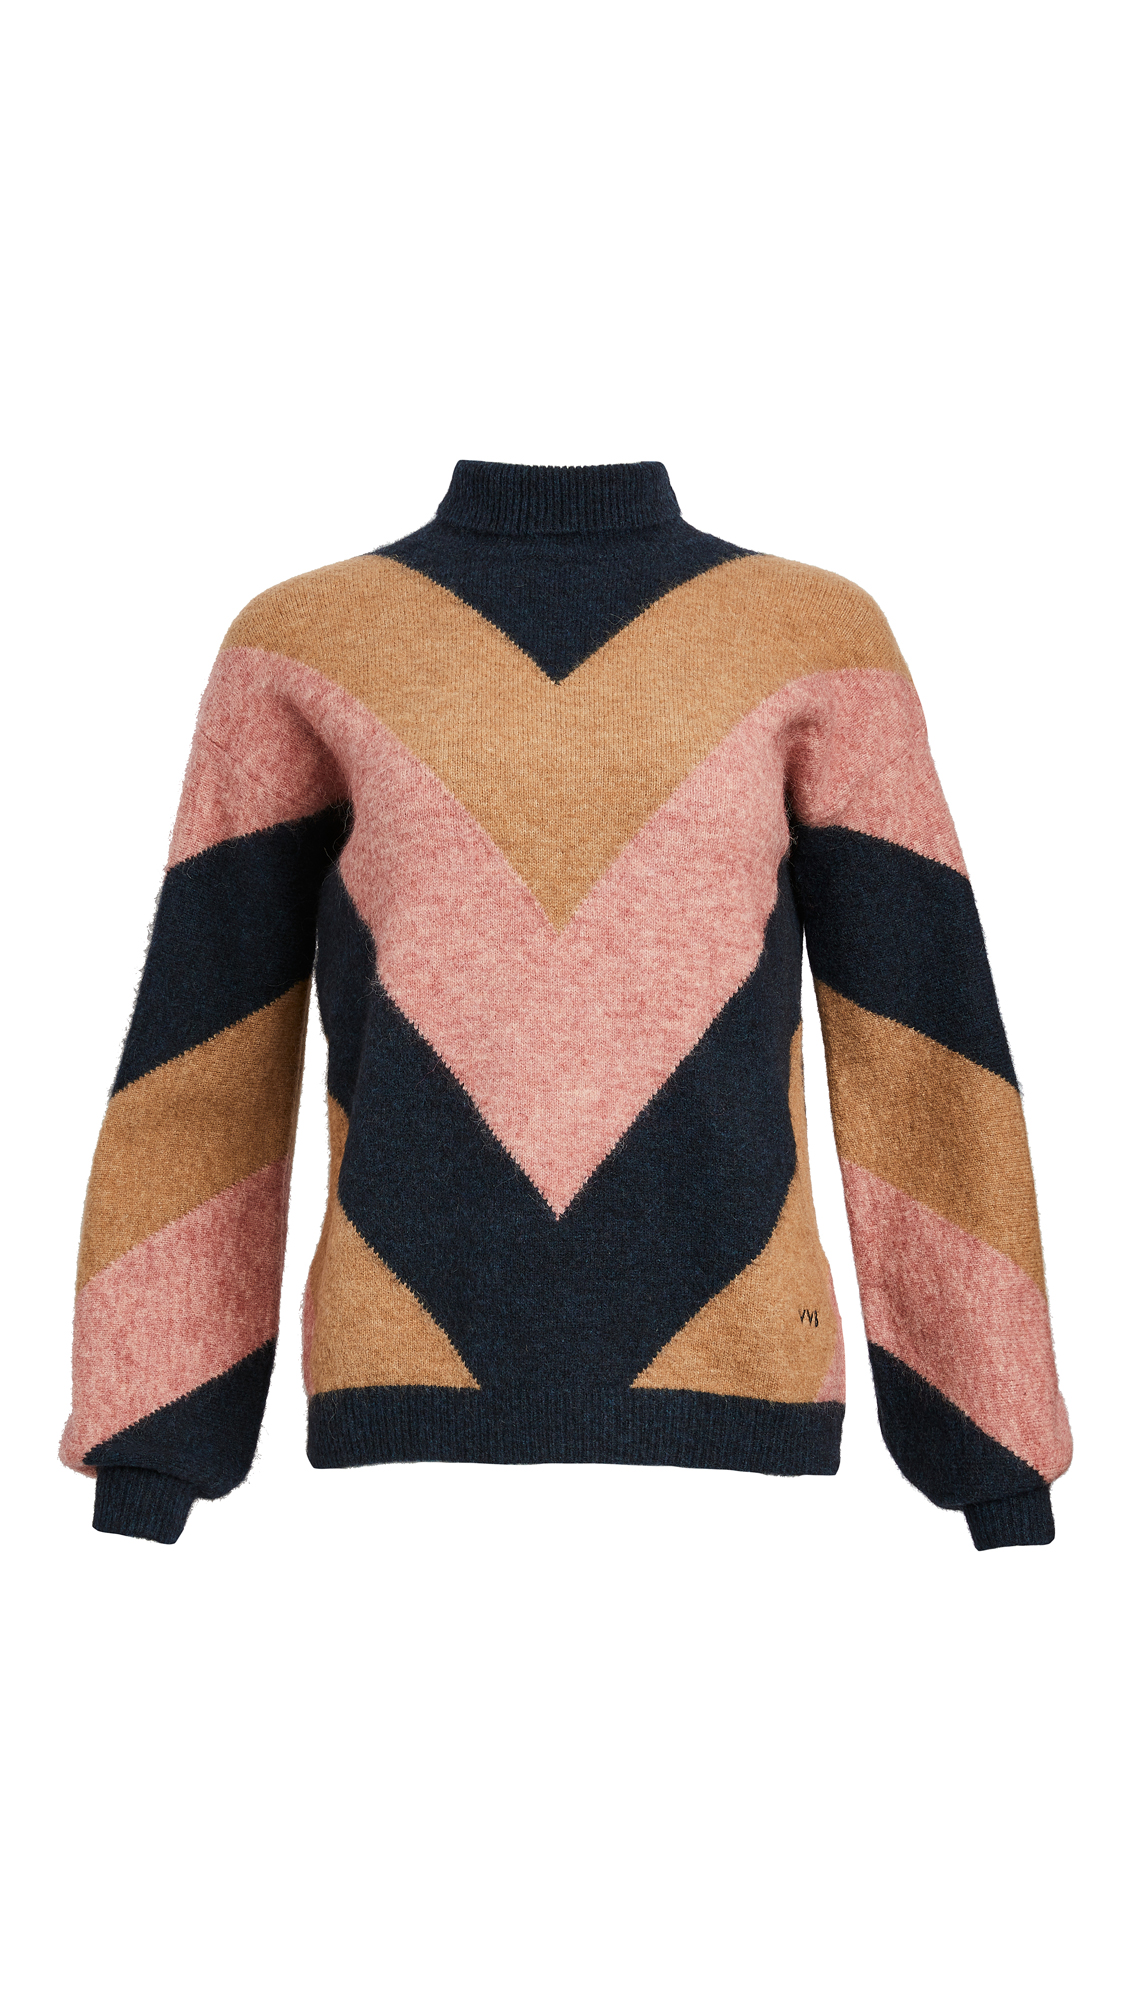 Victoria Victoria Beckham Oversized Mock Neck Sweater